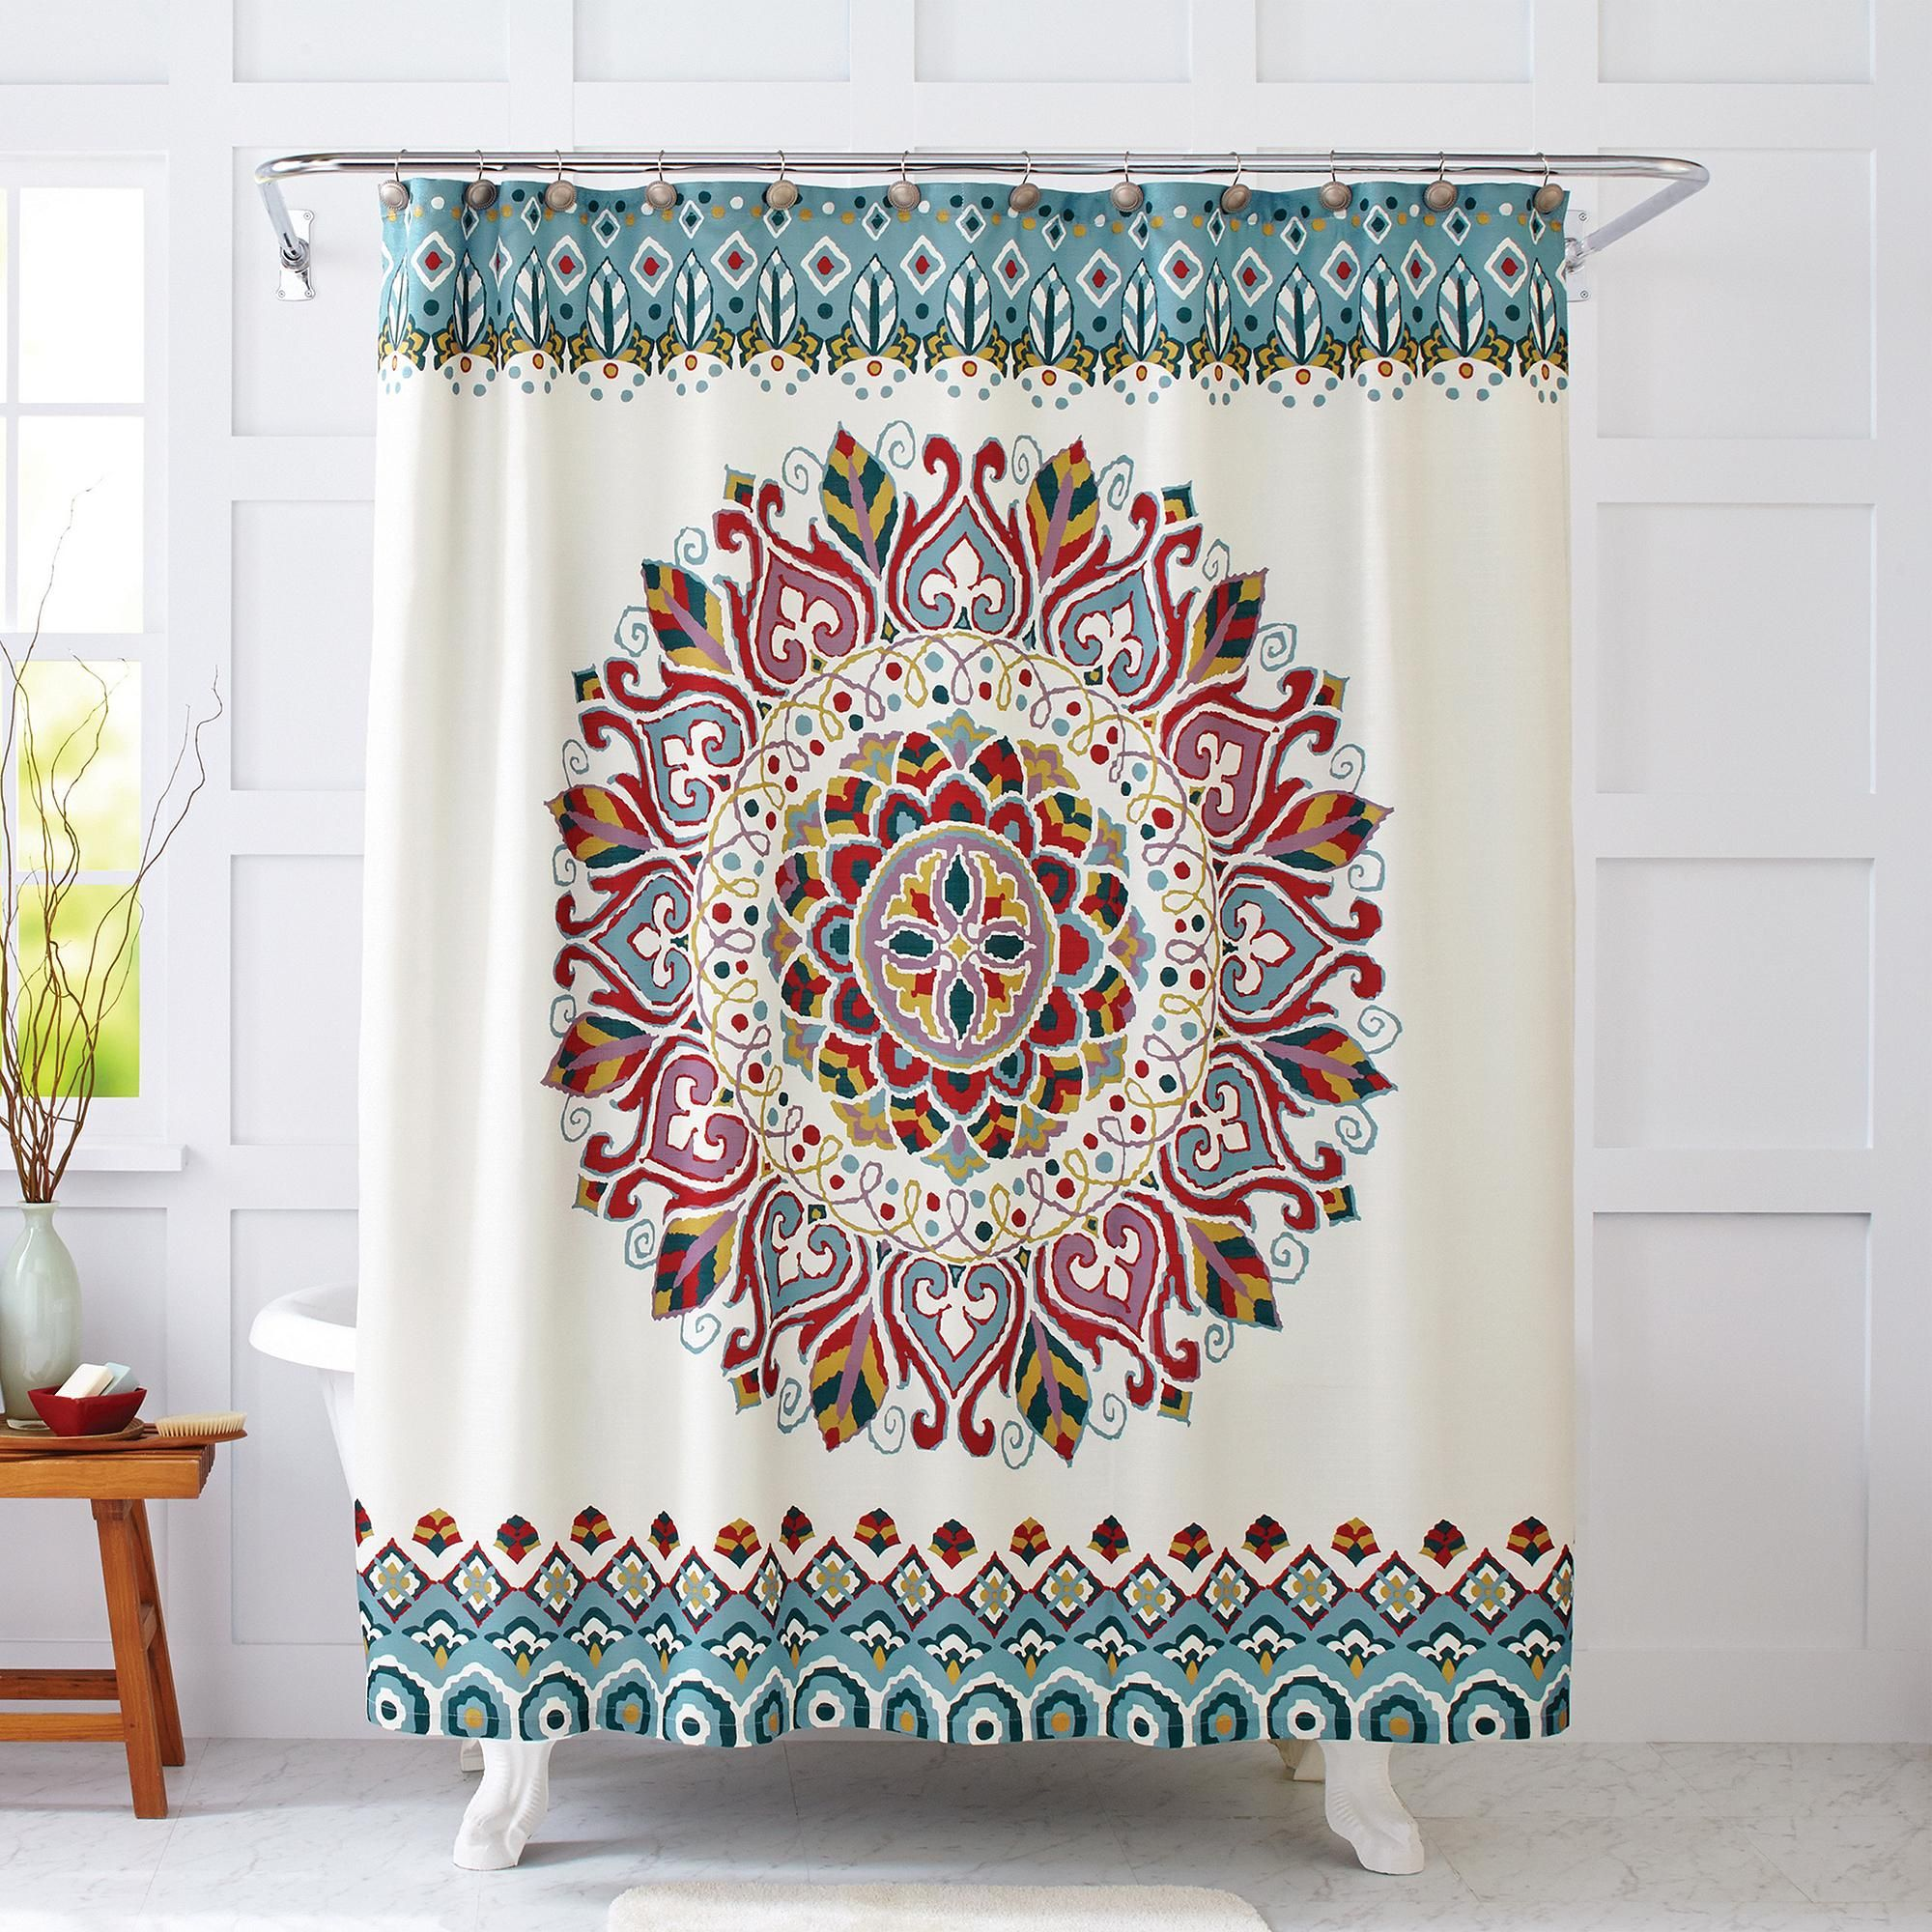 Better Homes and Gardens Medallion Fabric Shower Curtain - Walmart ...